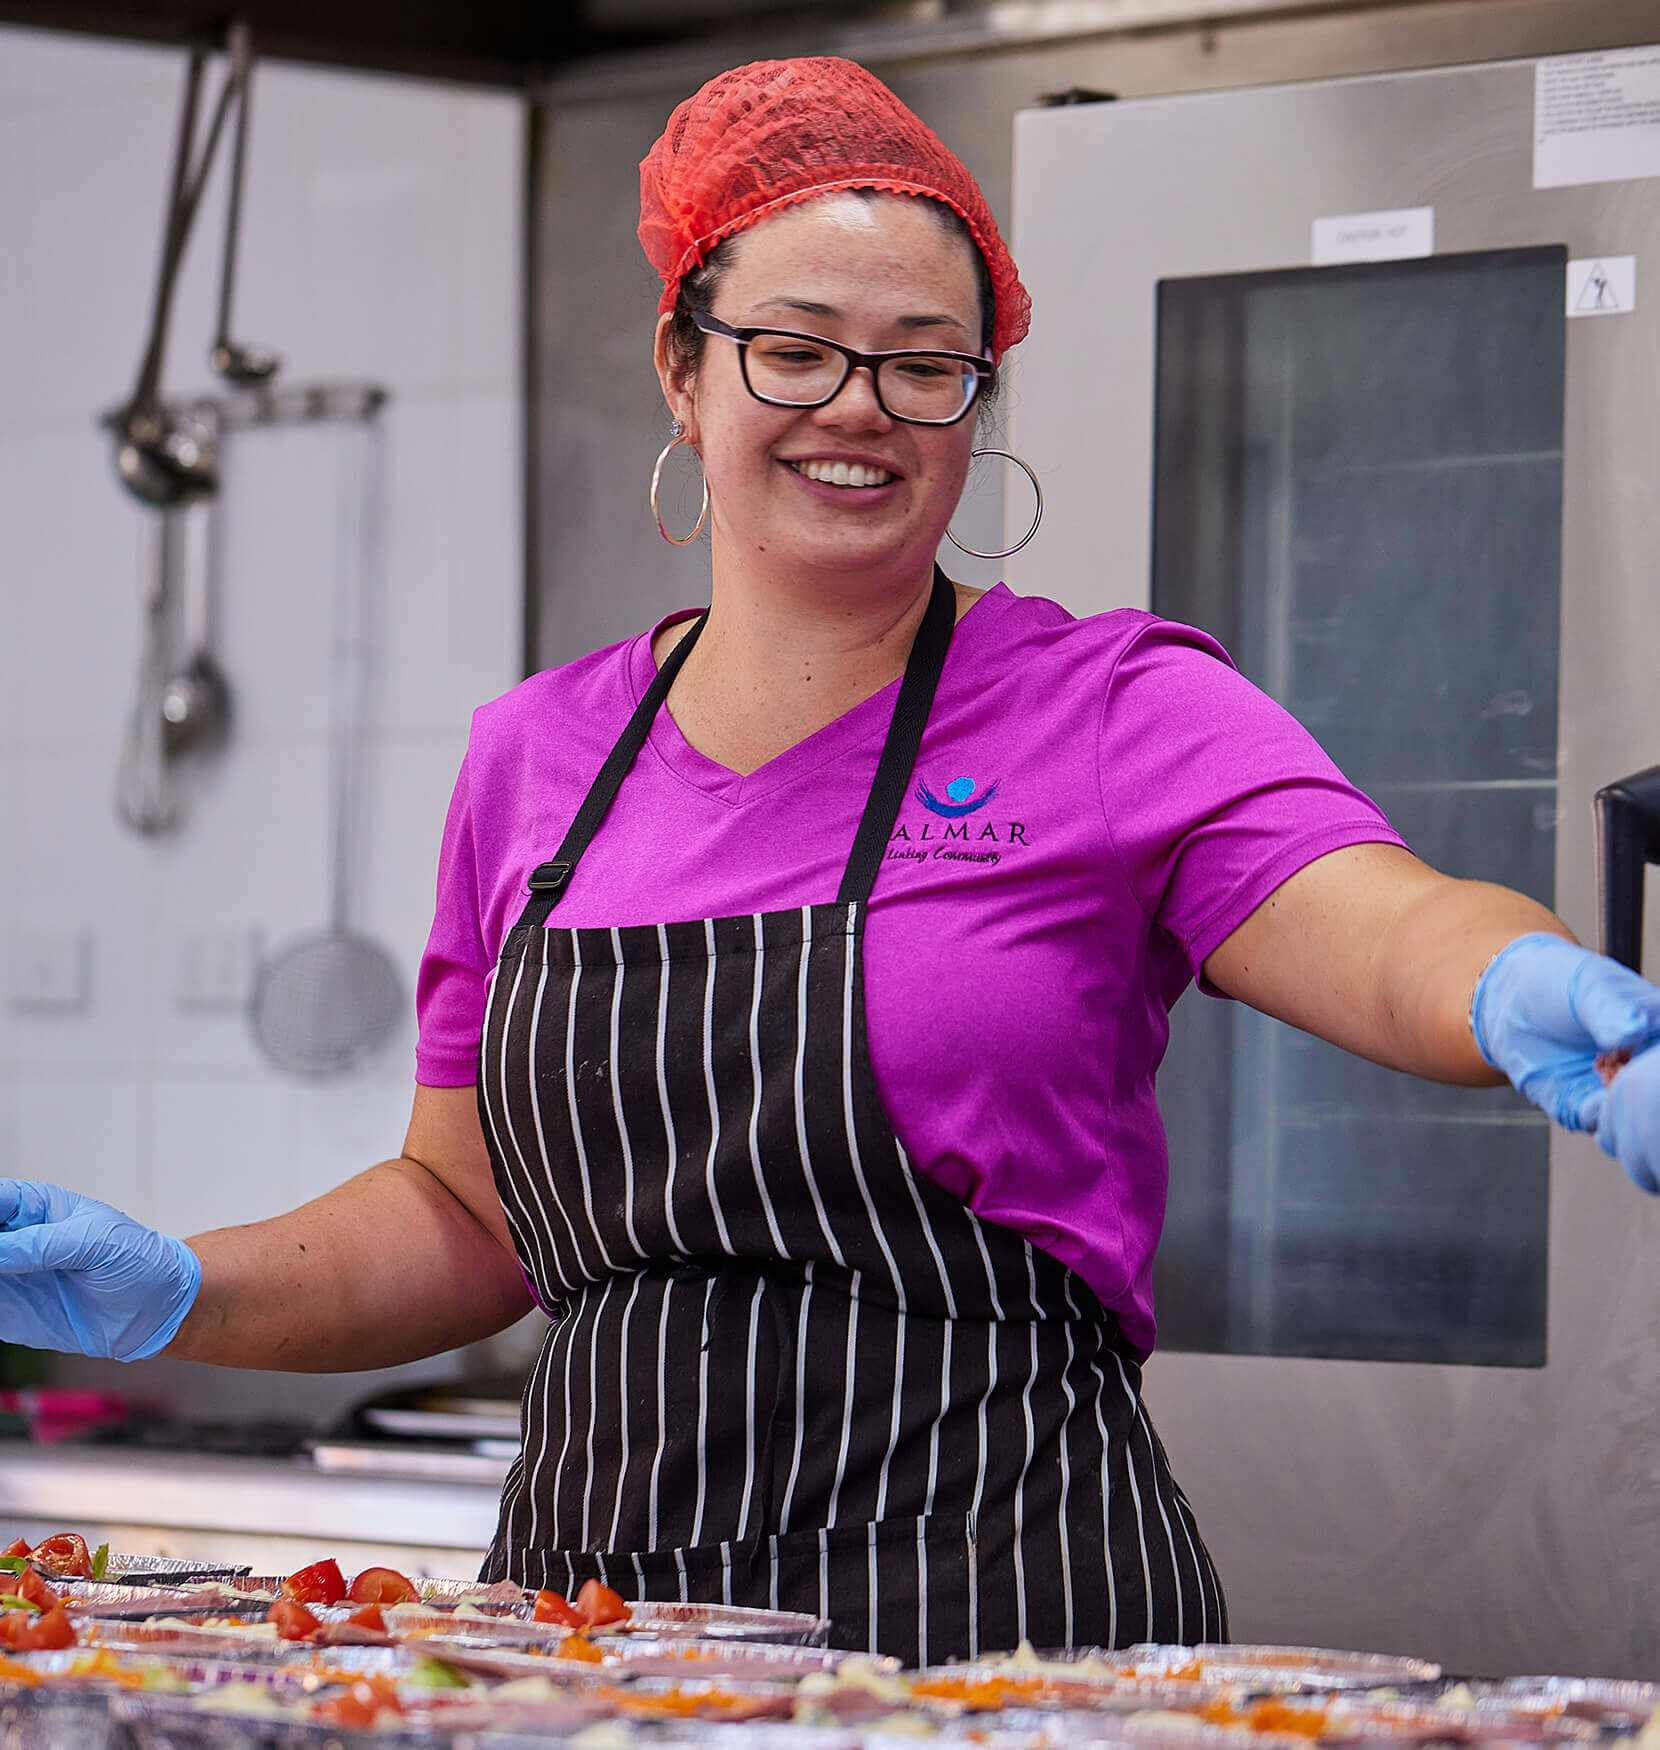 A woman working in a commercial kitchen wearing a bright pink shirt with a dark apron and blue hygienic gloves. She is smiling and her is covered by a red hair net.